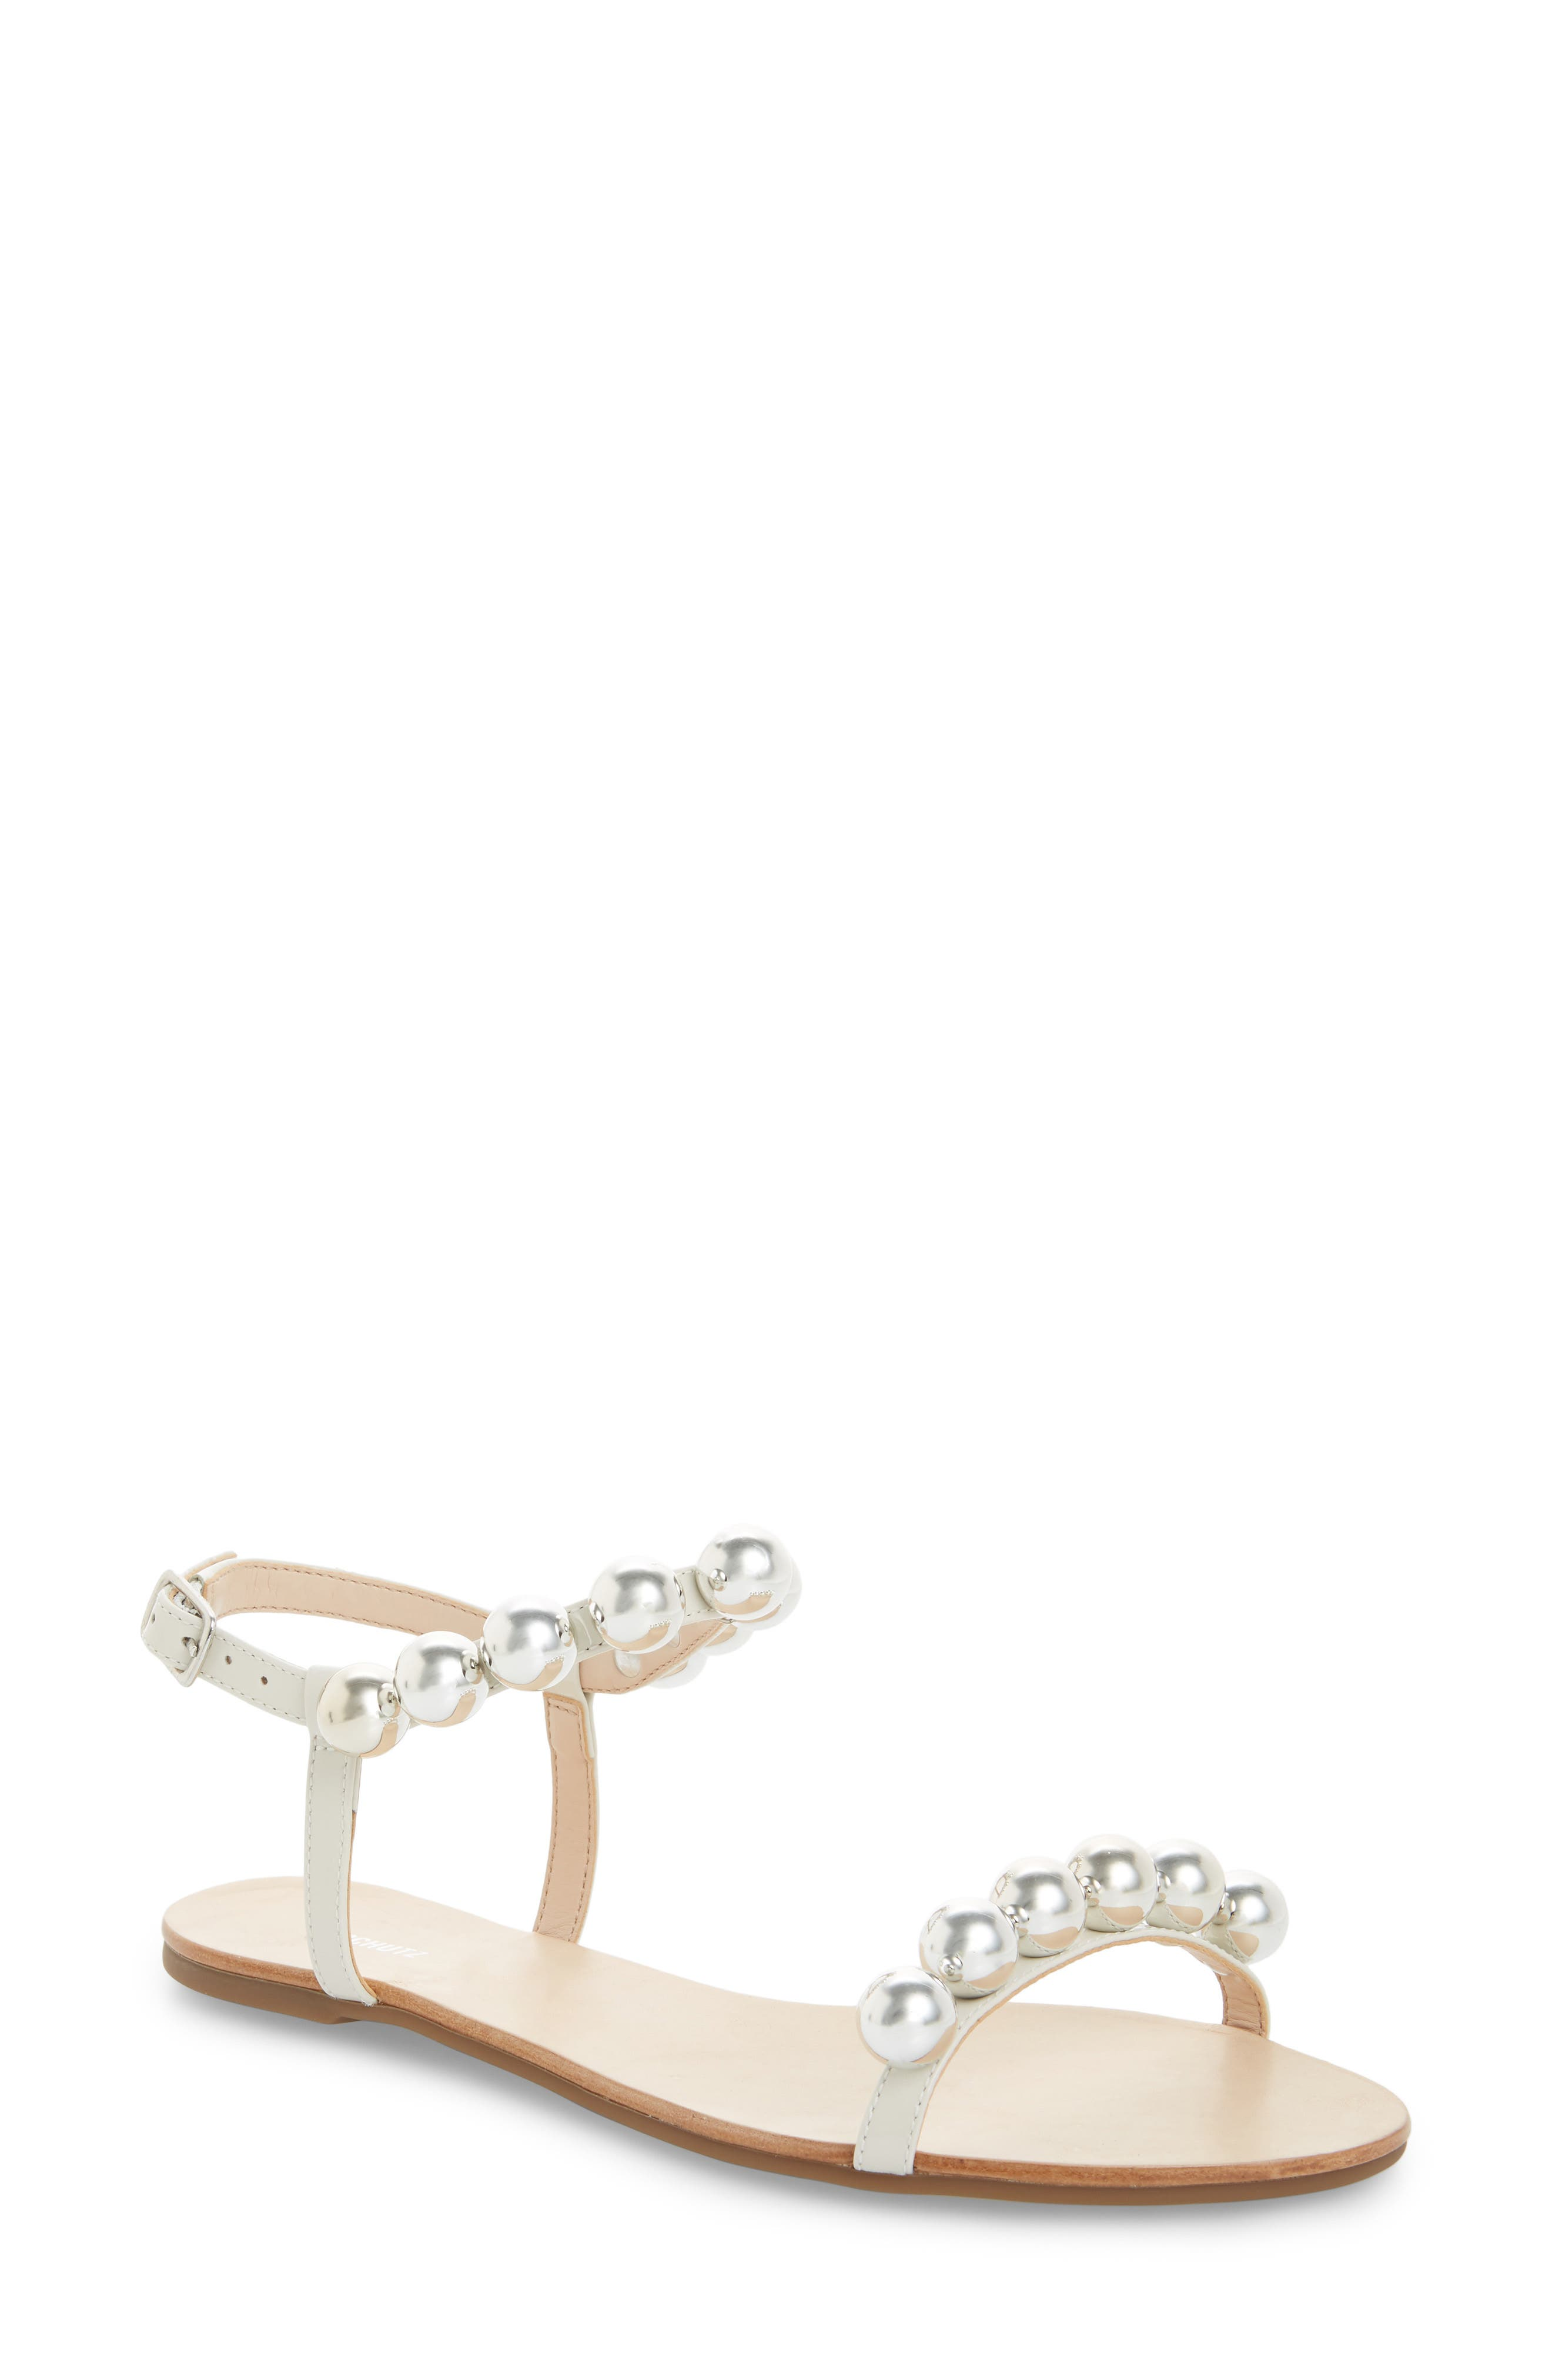 Hebe Ankle Strap Sandal,                             Main thumbnail 1, color,                             PEARL LEATHER